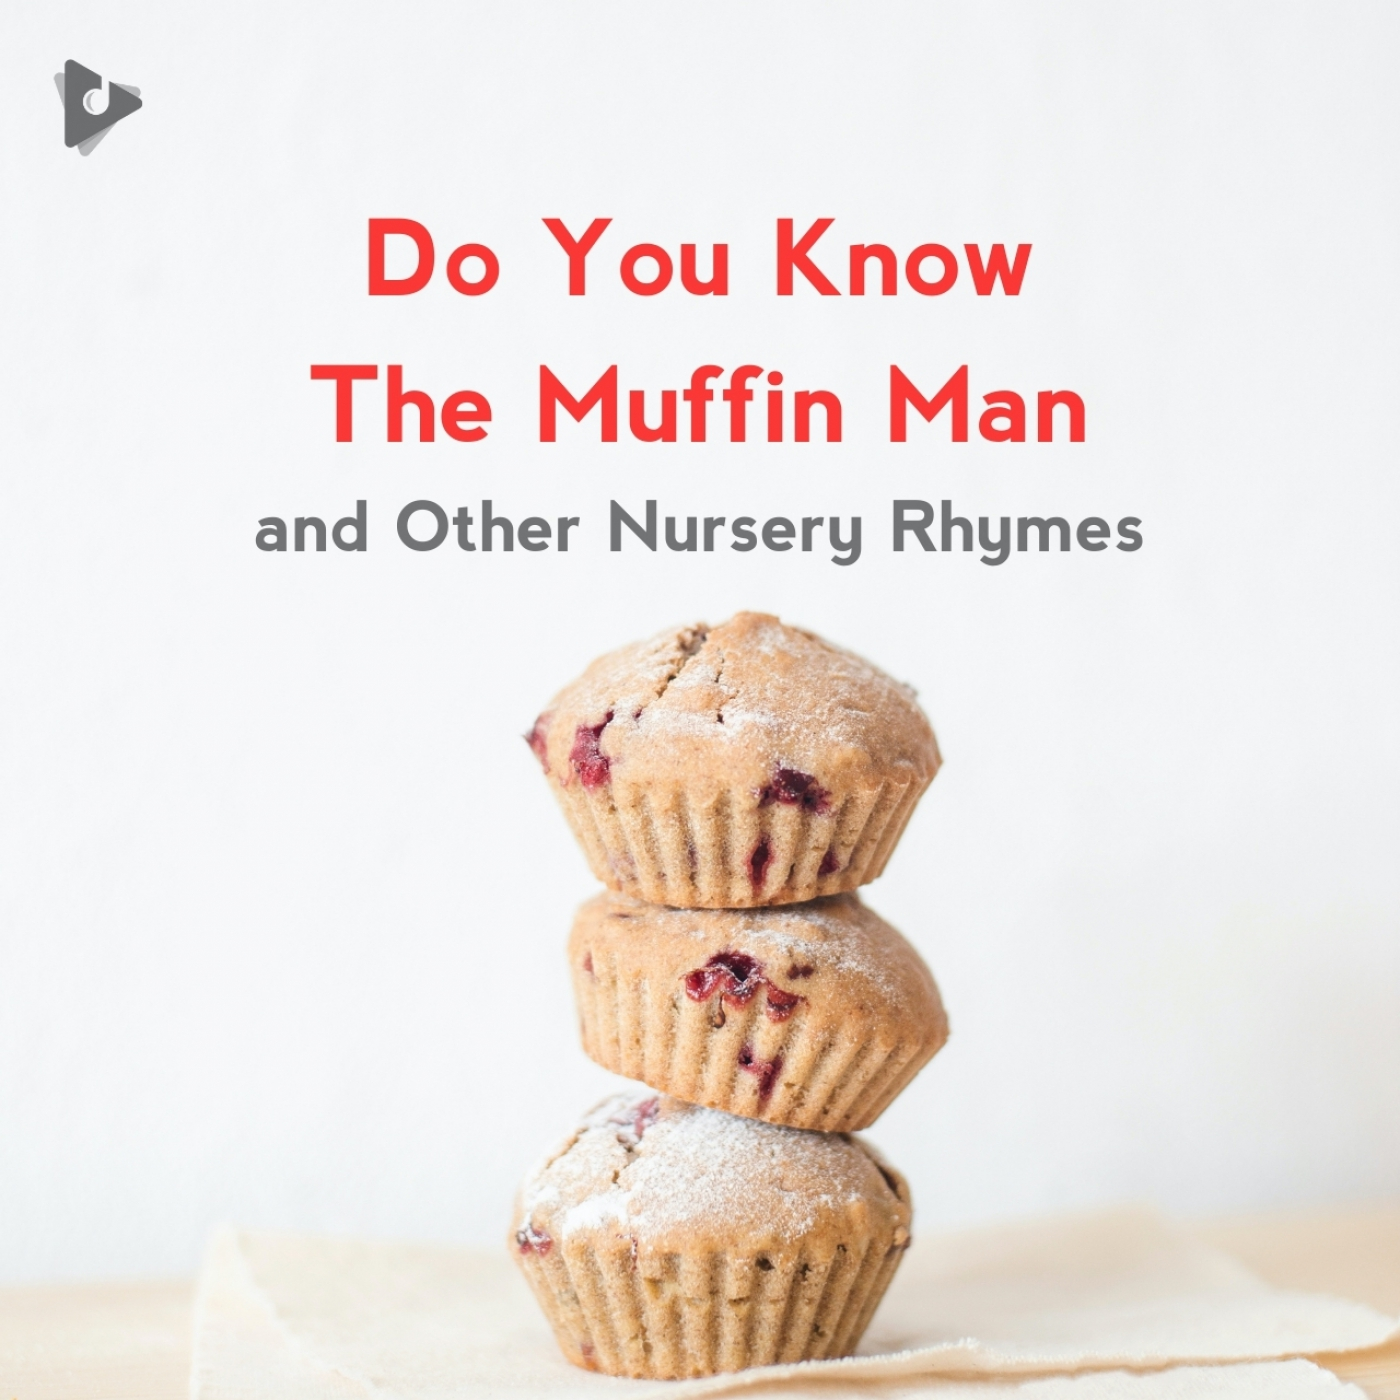 Do You Know The Muffin Man and Other Nursery Rhymes